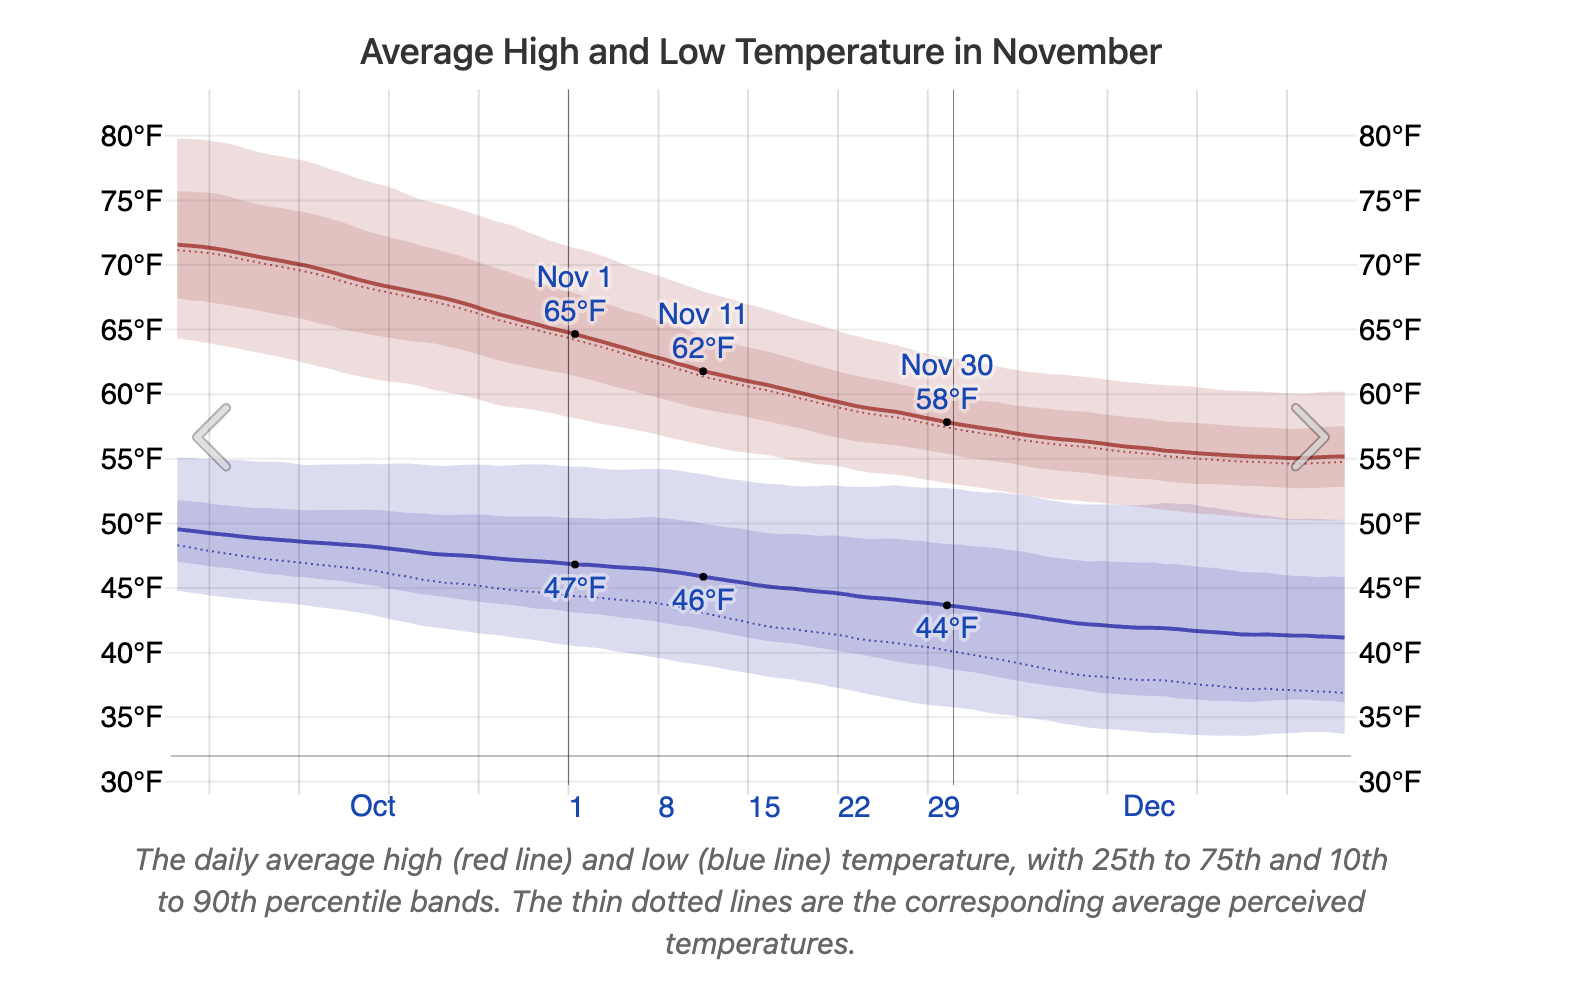 Chart Average High and Low Temperature in November